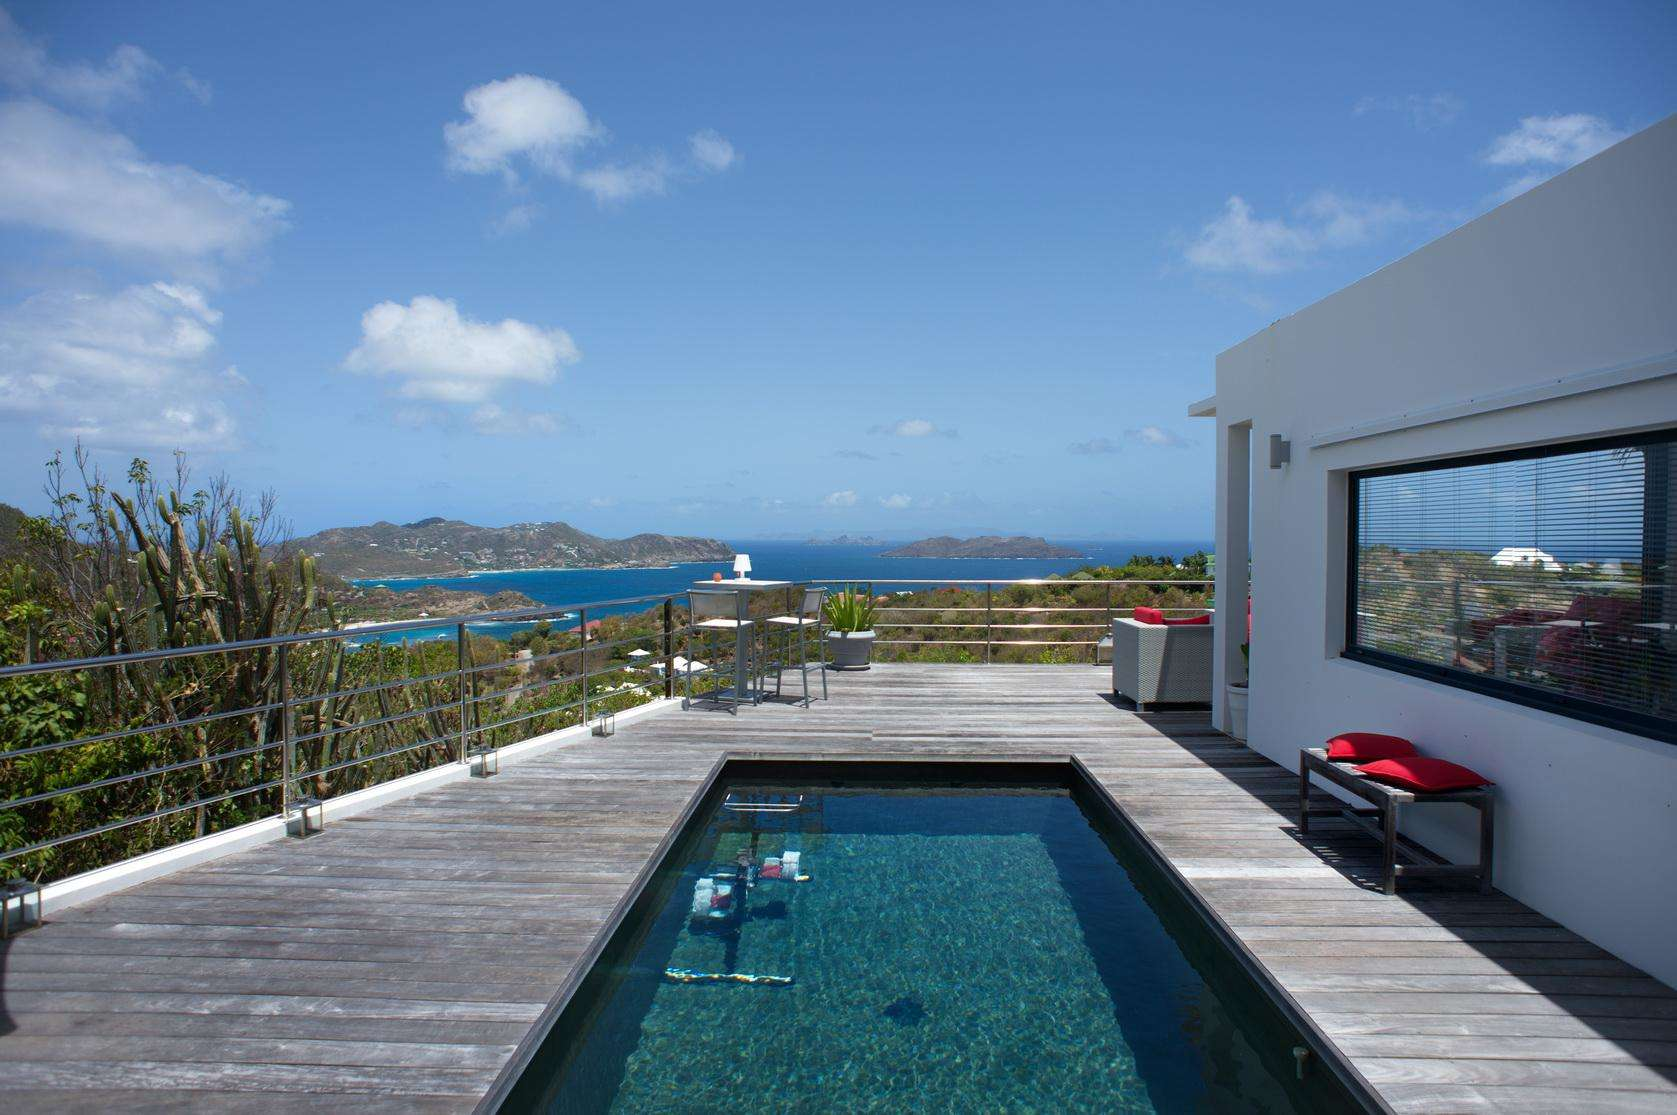 Luxury villa rentals caribbean - St barthelemy - Vitet - No location 4 - Ti Agave - Image 1/20